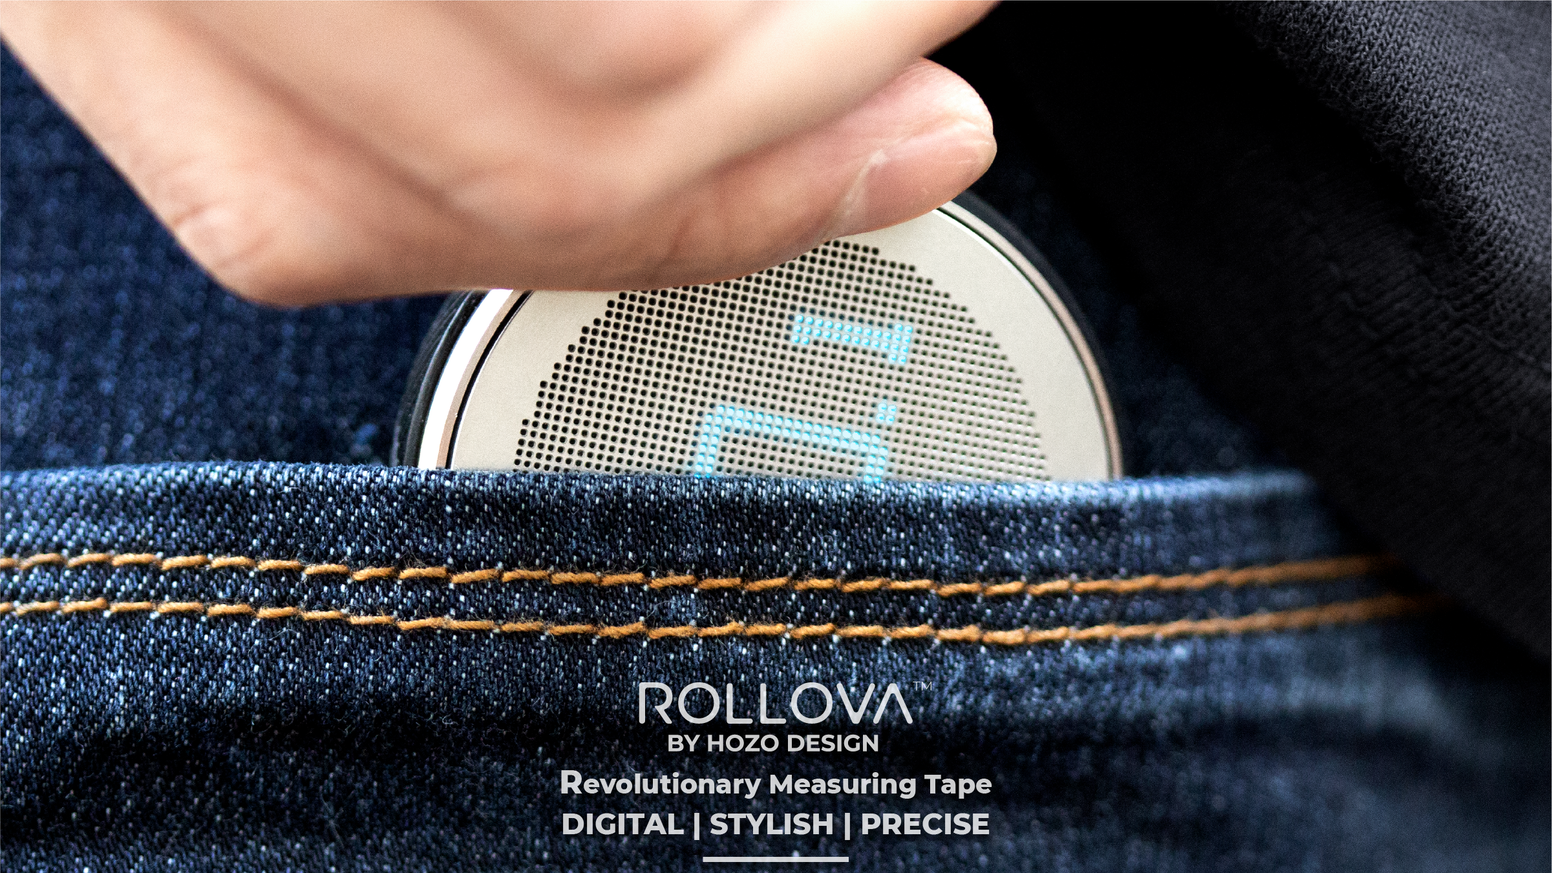 Replacing traditional Measuring Tape | Pocket-friendly gadget | Measure curves and lines | One roll at a time